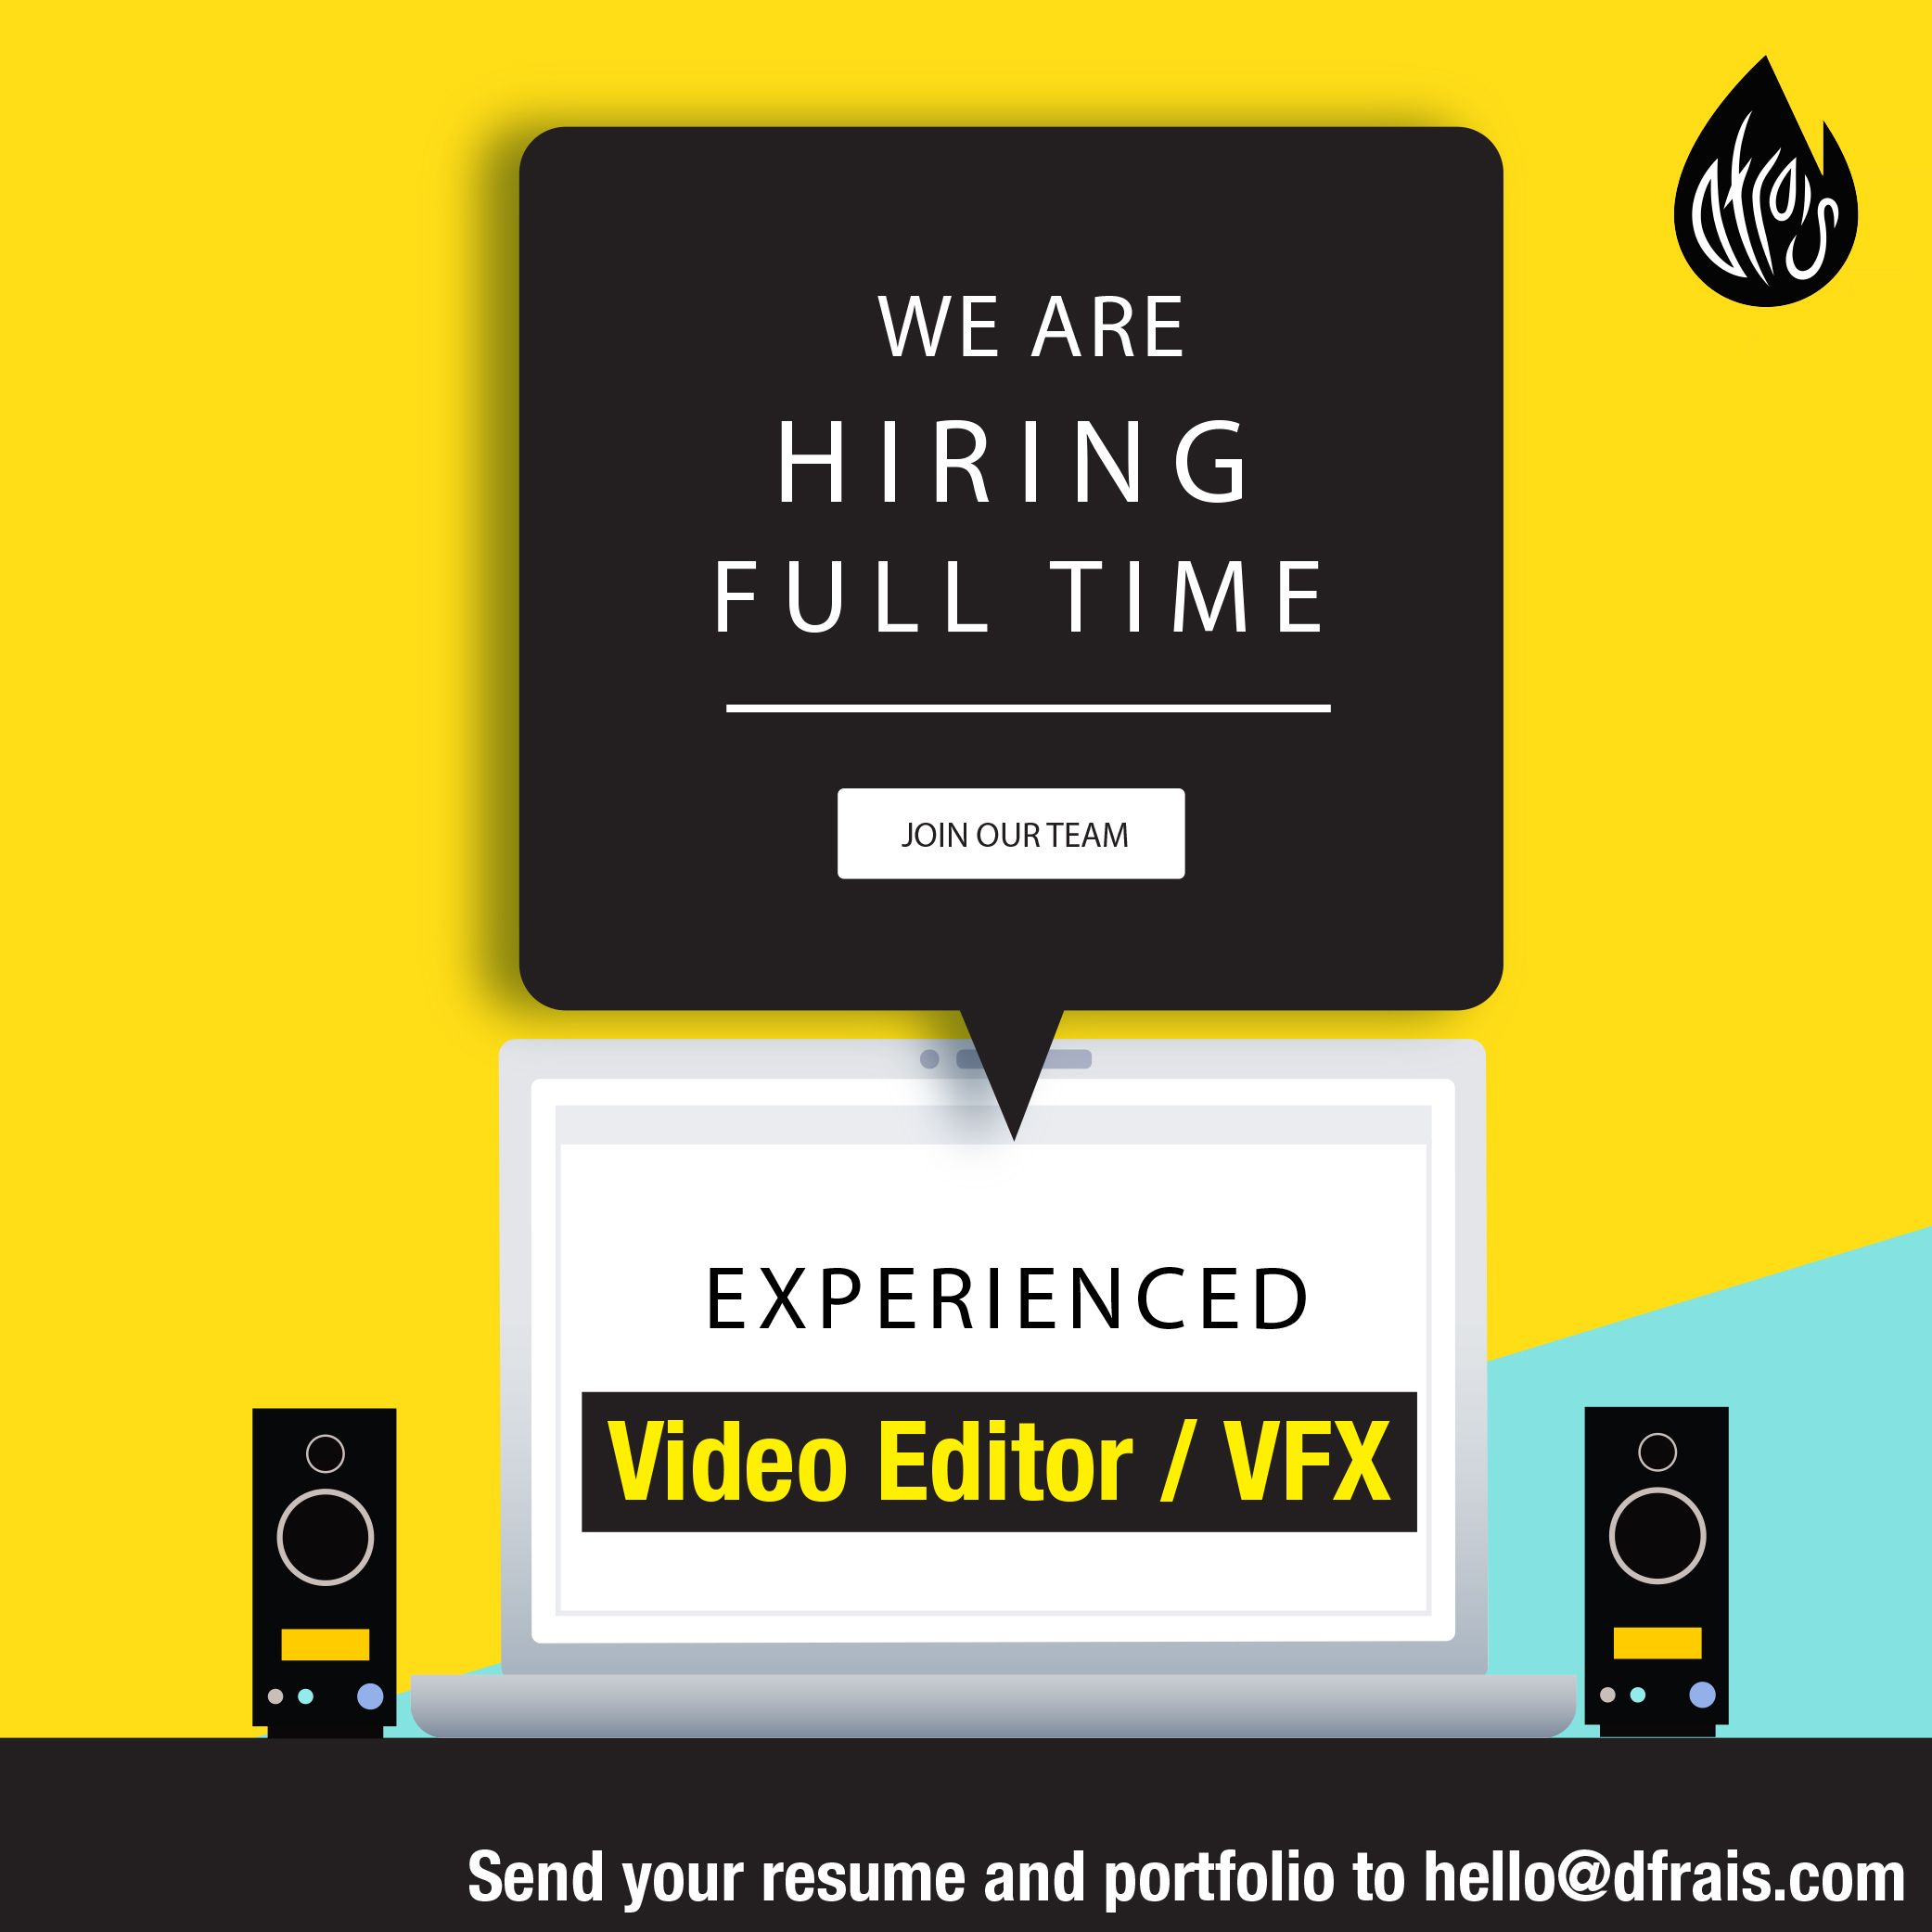 This Poster Is To Hiring Fulltime Experienced Video Editor Vfx